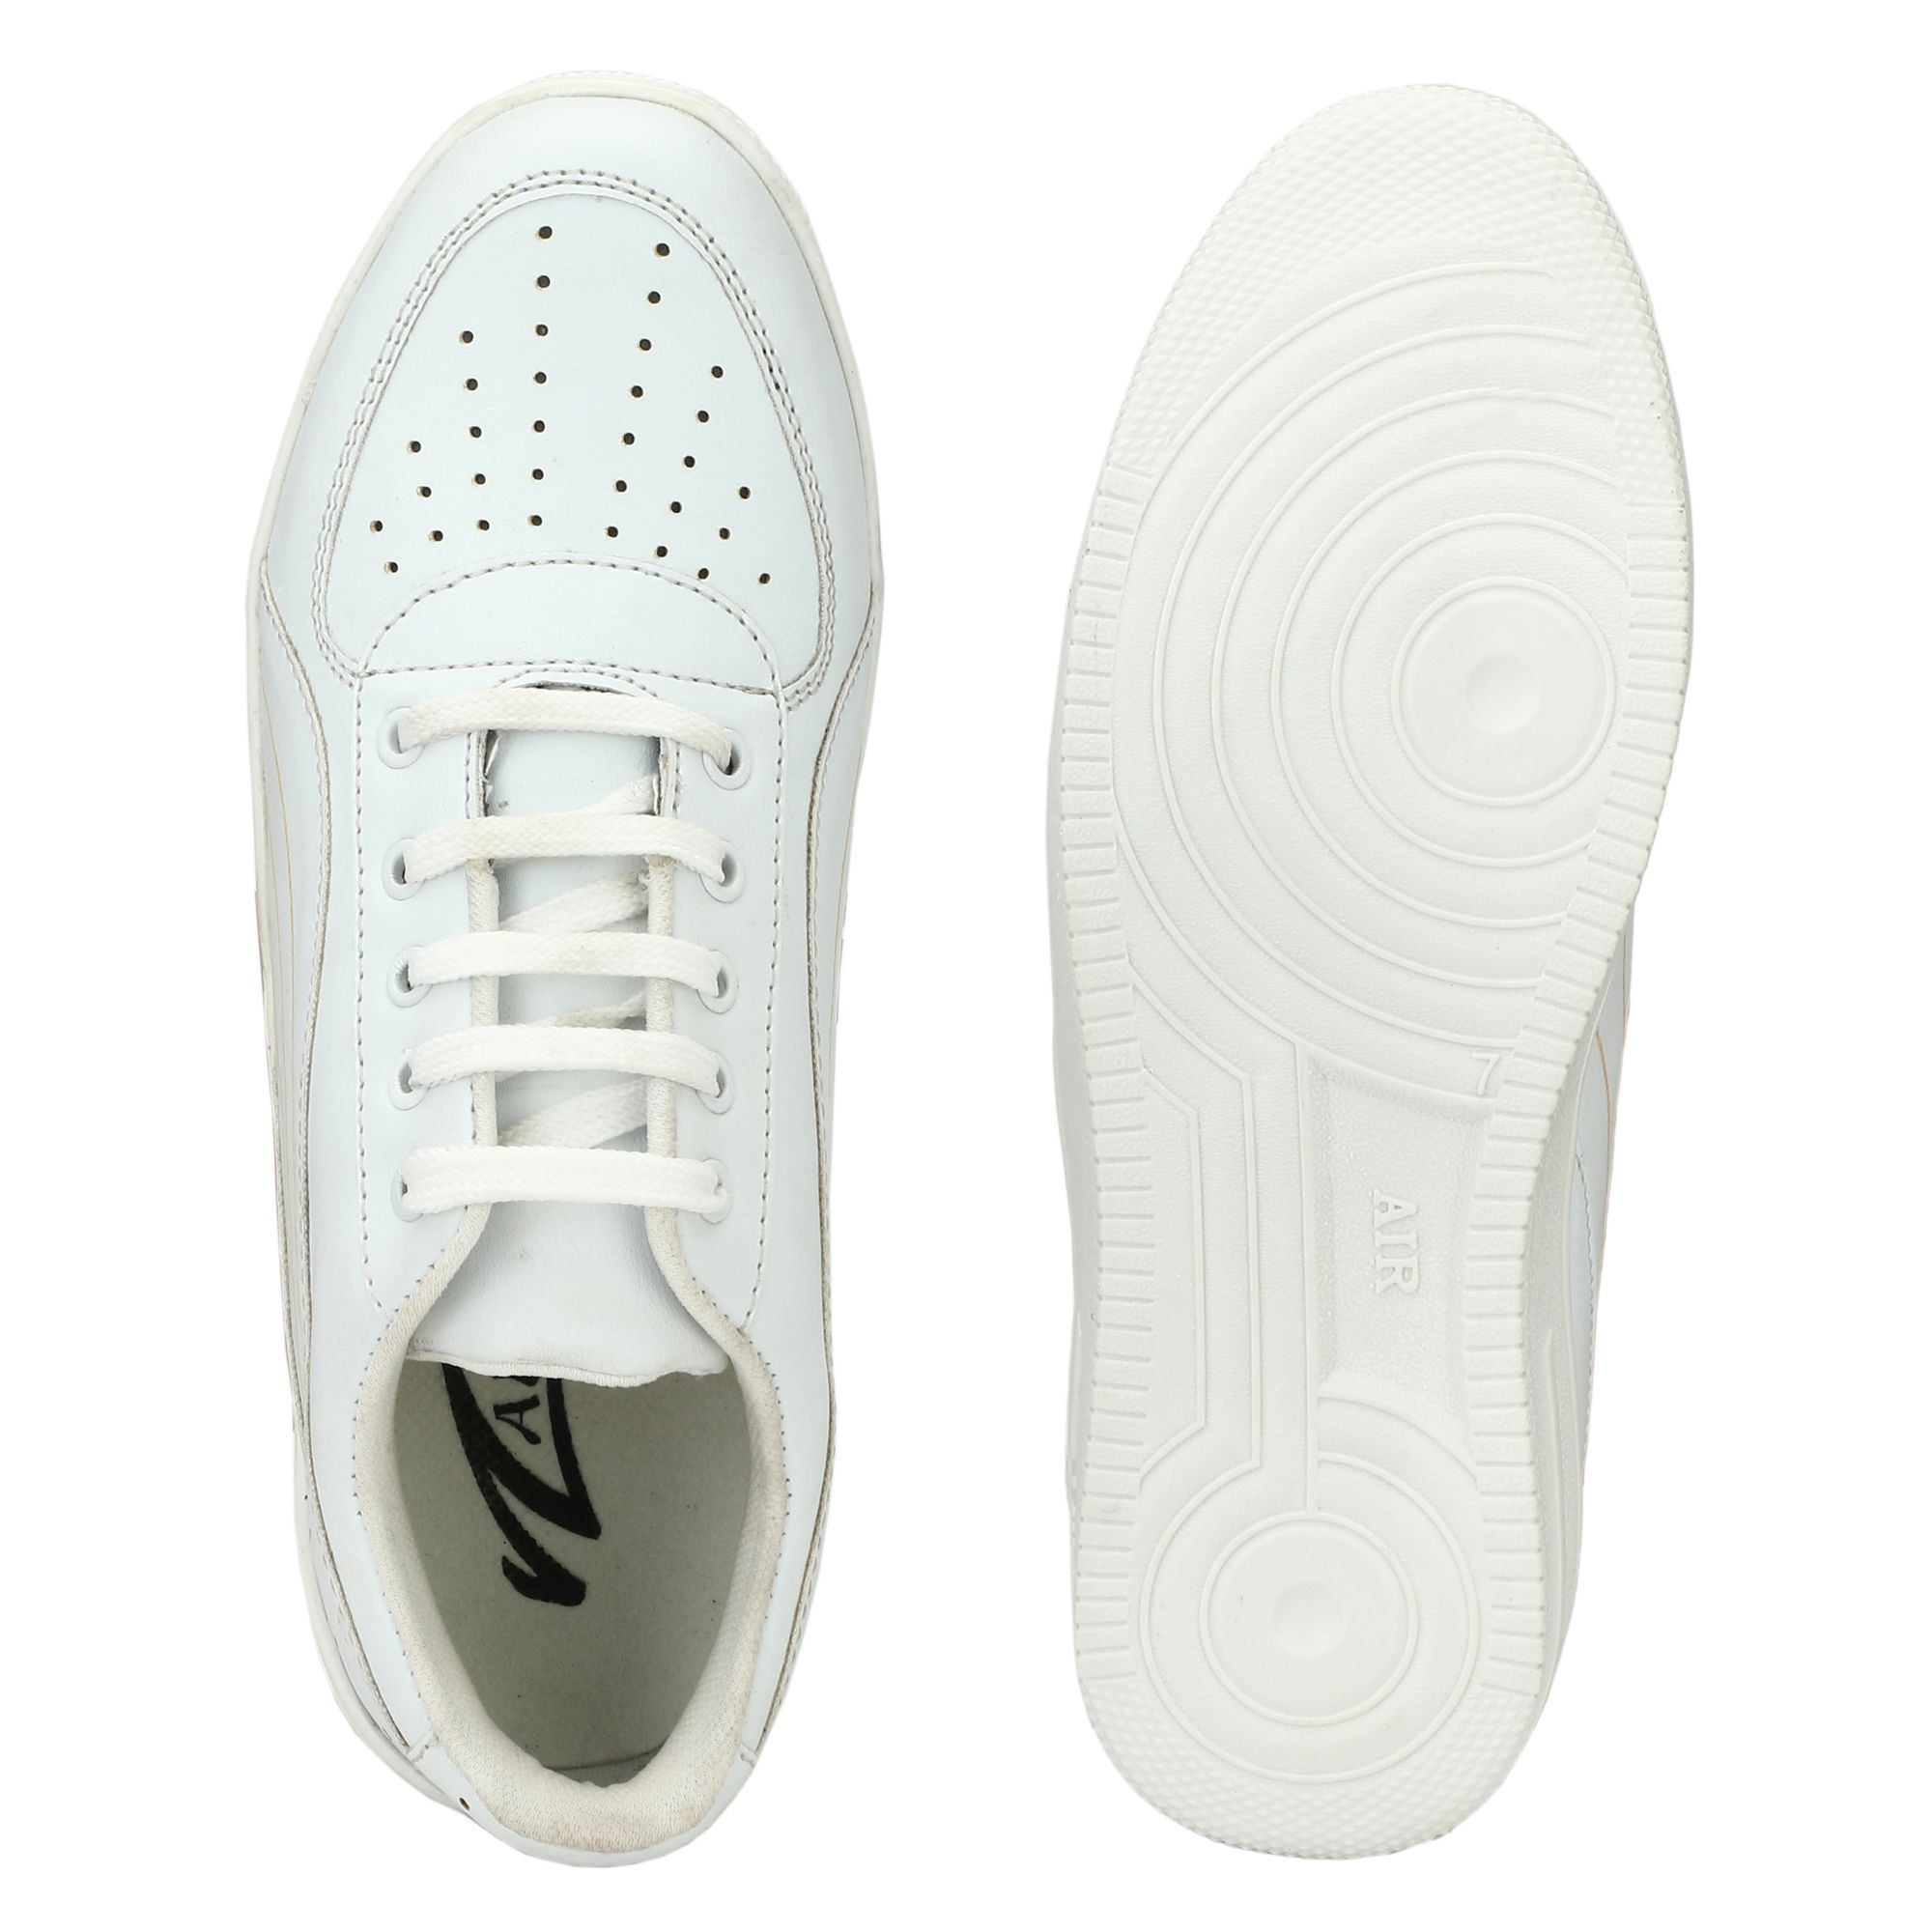 7387394a15c1 ... AARIC LC24 Sneakers White Casual Shoes